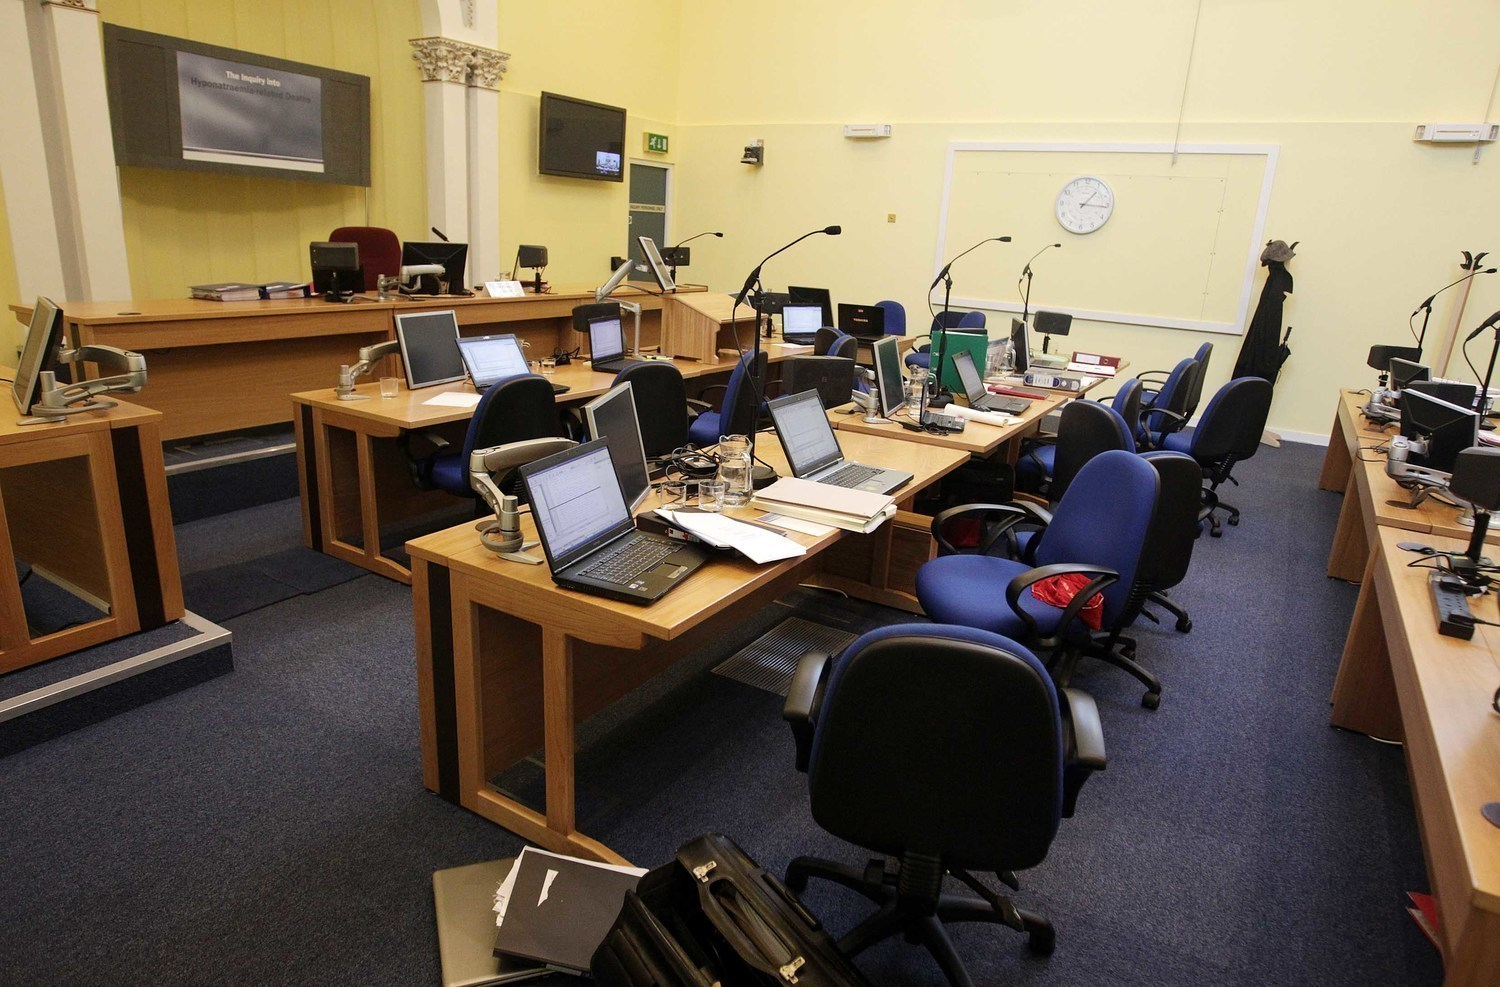 The public hearings of the Hyponatraemia Inquiry took place in Banbridge court house